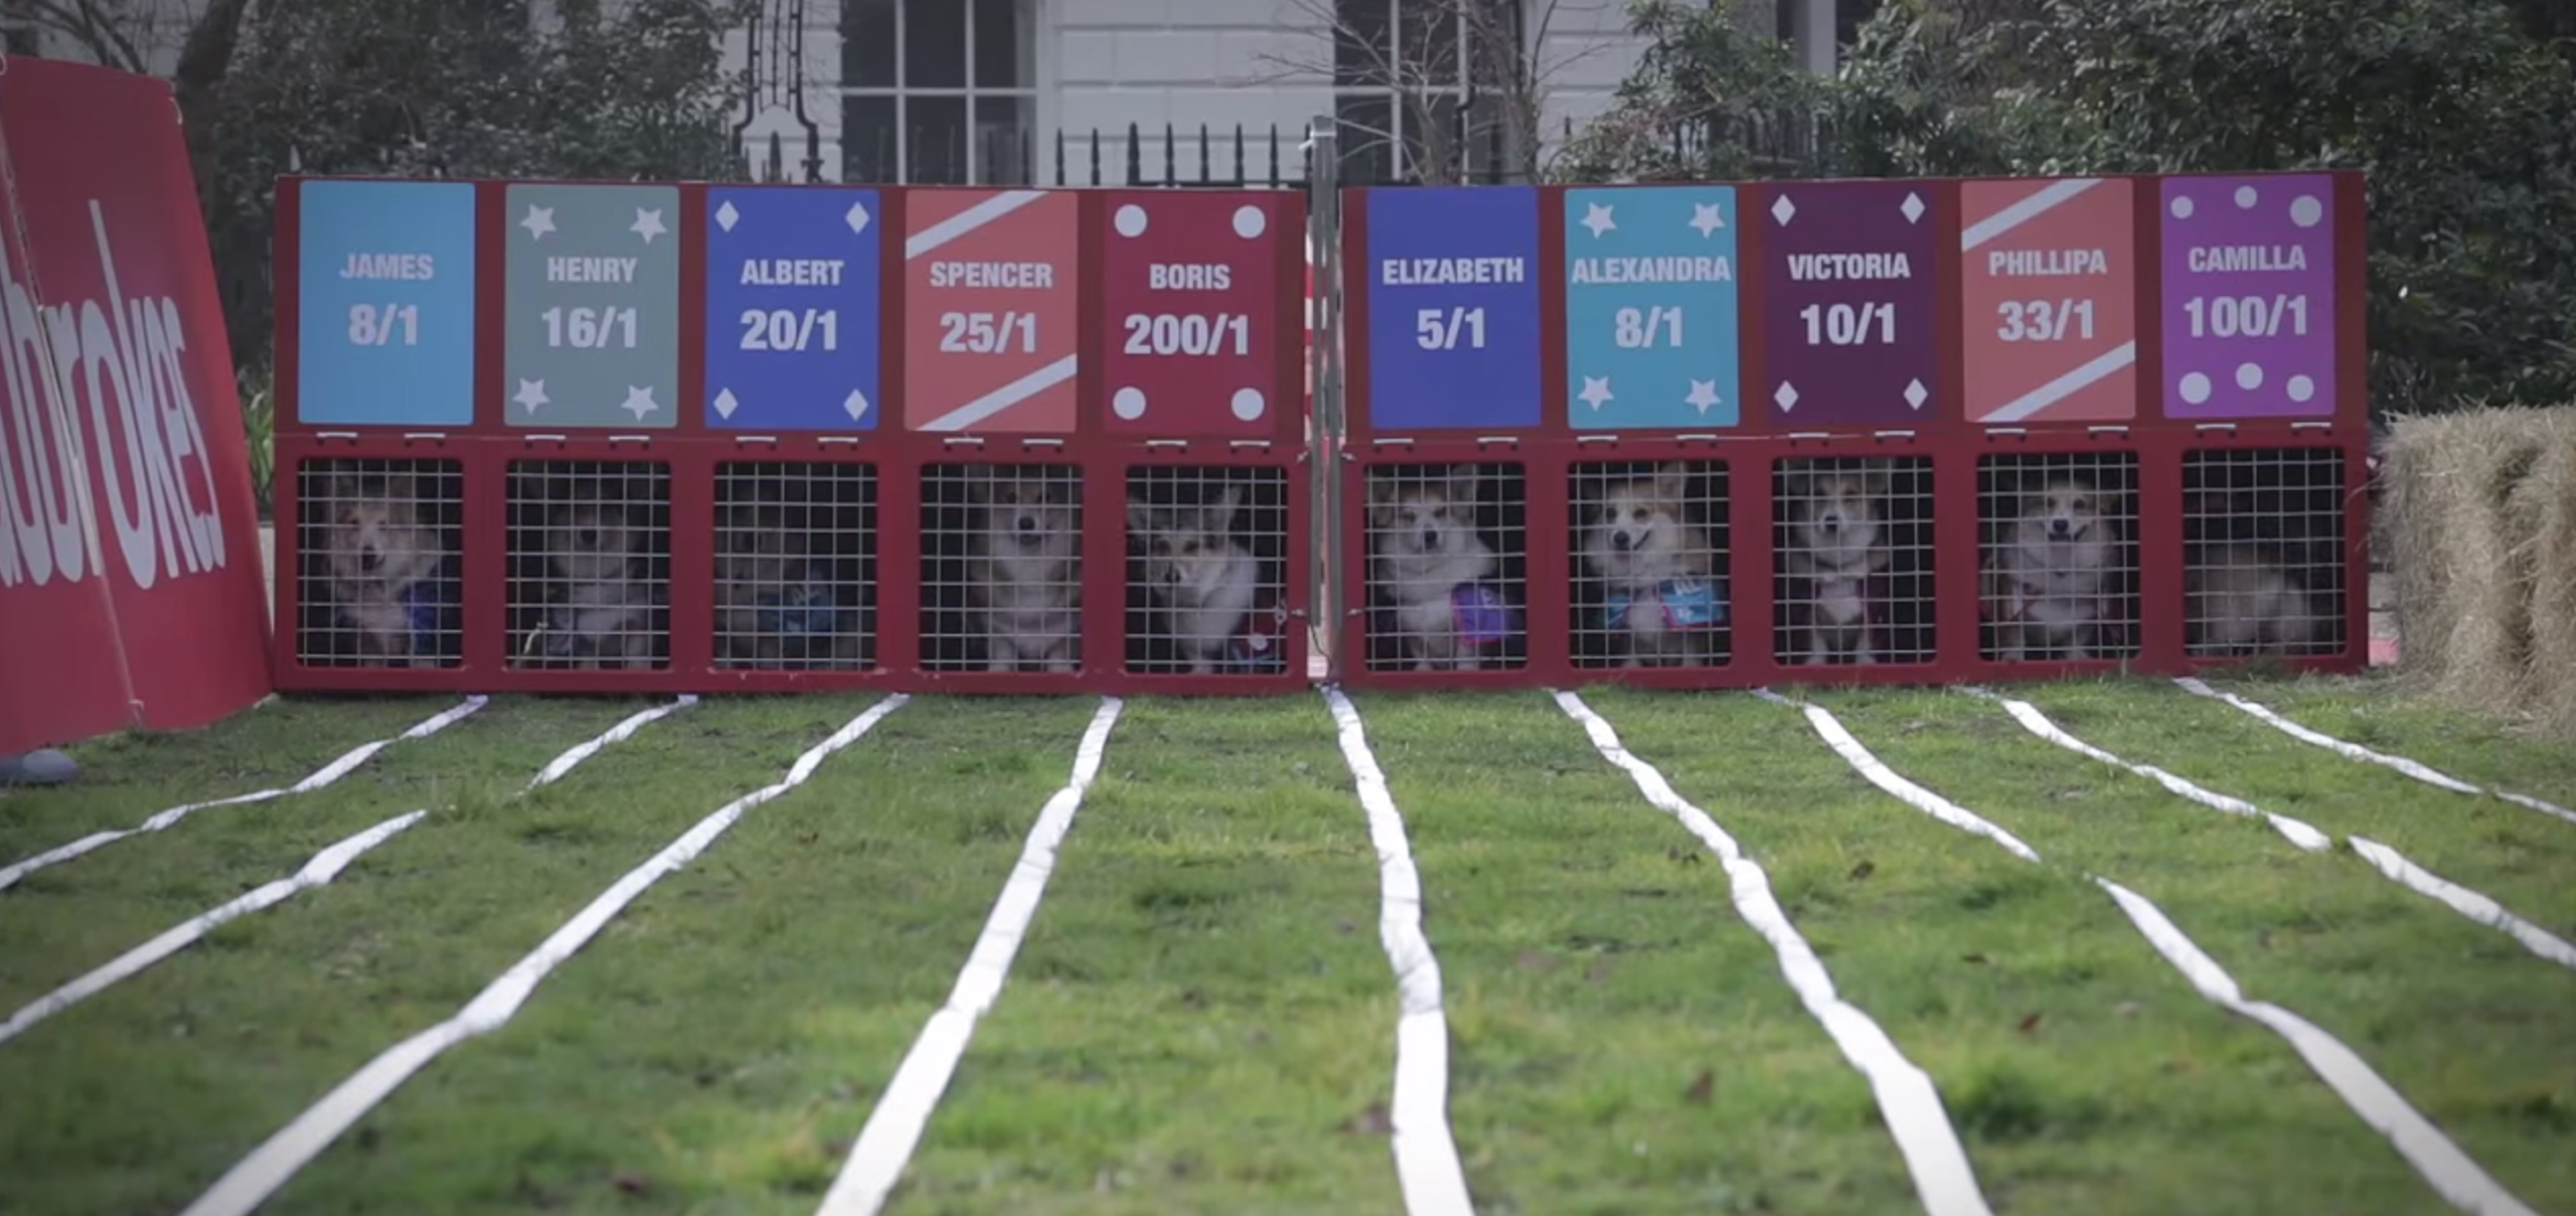 Royal Baby betting stakes were raised as 10 corgis took to the track to help punters determine the name and sex of the next Royal Baby.